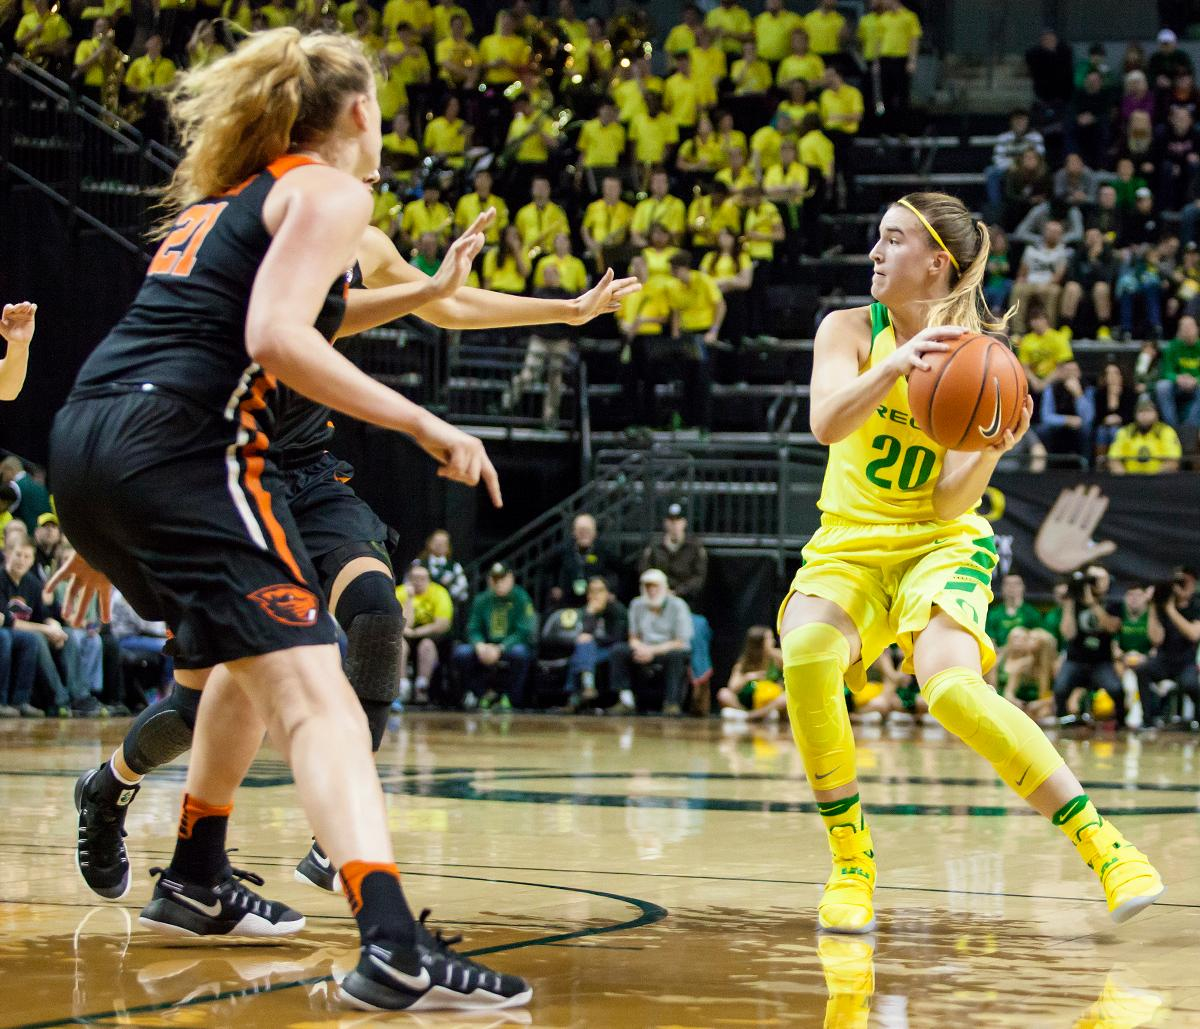 Oregon guard Sabrina Ionescu (#20) looks to make a pass around a pair of Oregon State defenders. The Oregon Ducks lost 40 to 43 against the Oregon State Beavers after a tightly matched 4th quarter. Photo by Ben Lonergan, Oregon News Lab